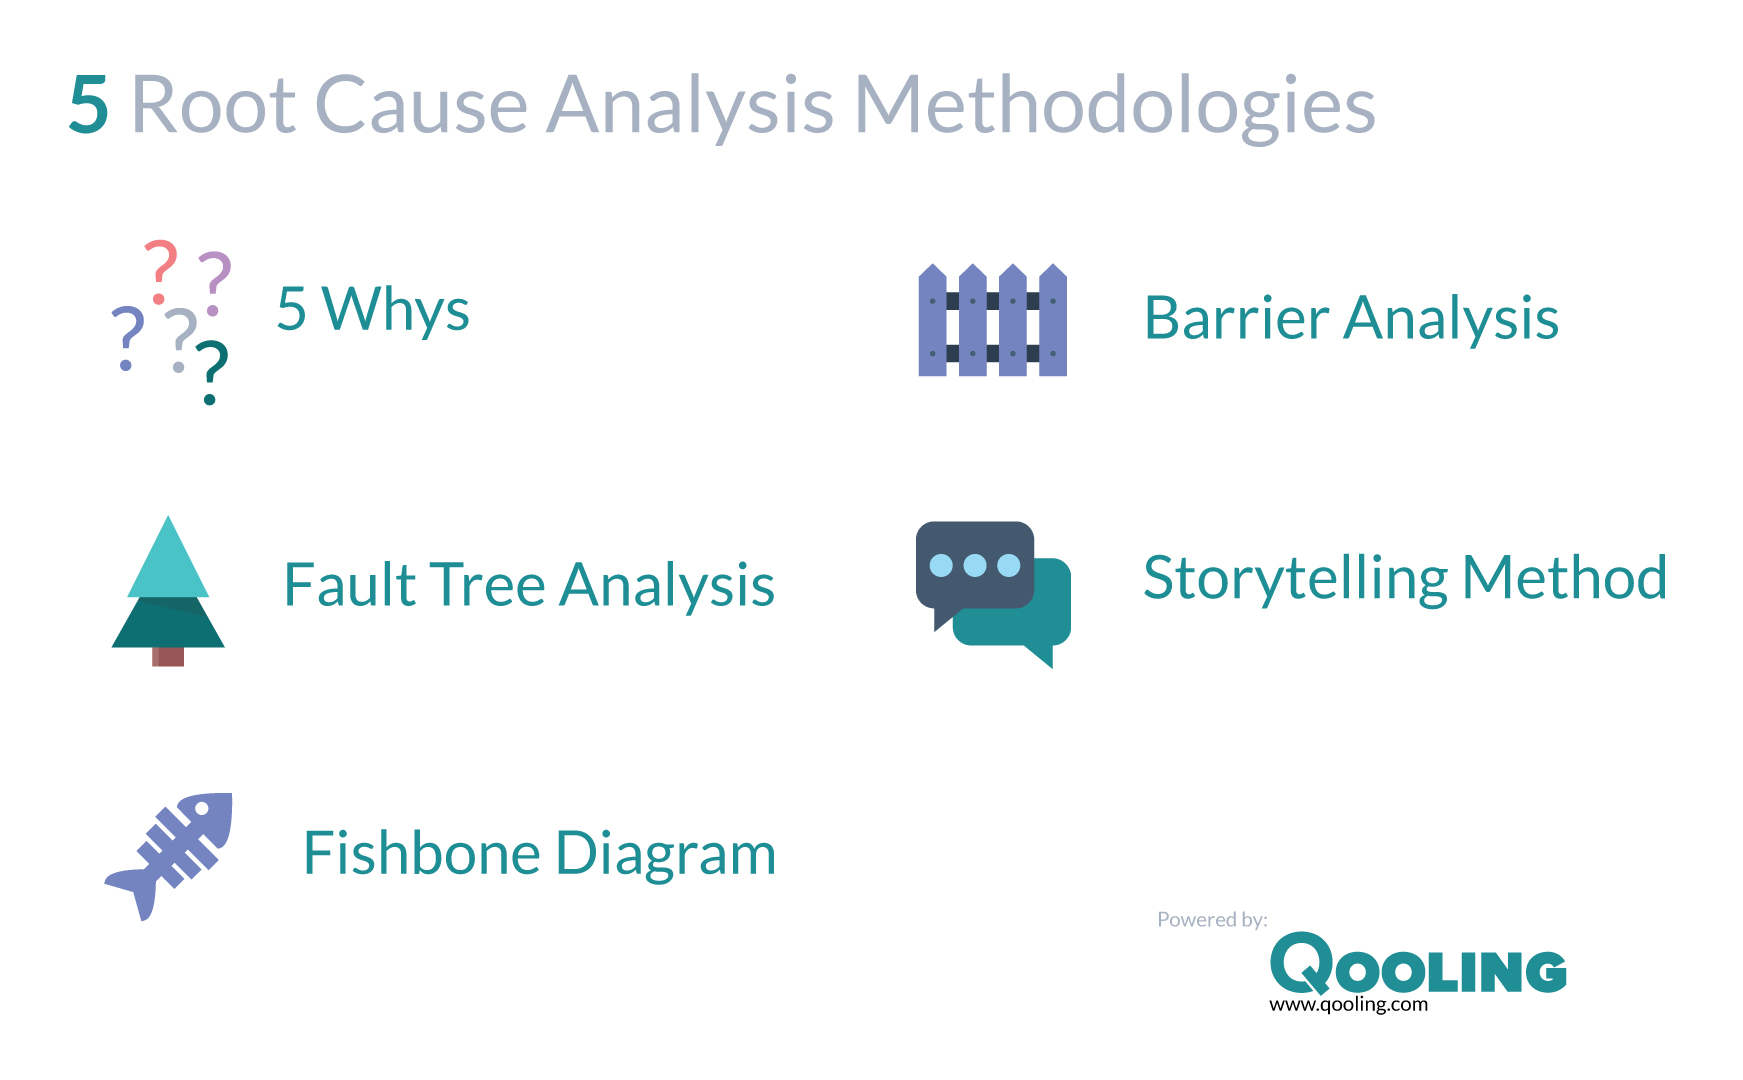 Ncr archives qooling the root cause analysis really allows the company to find out why things went wrong finding the root cause is important for setting up the right actions to ccuart Gallery